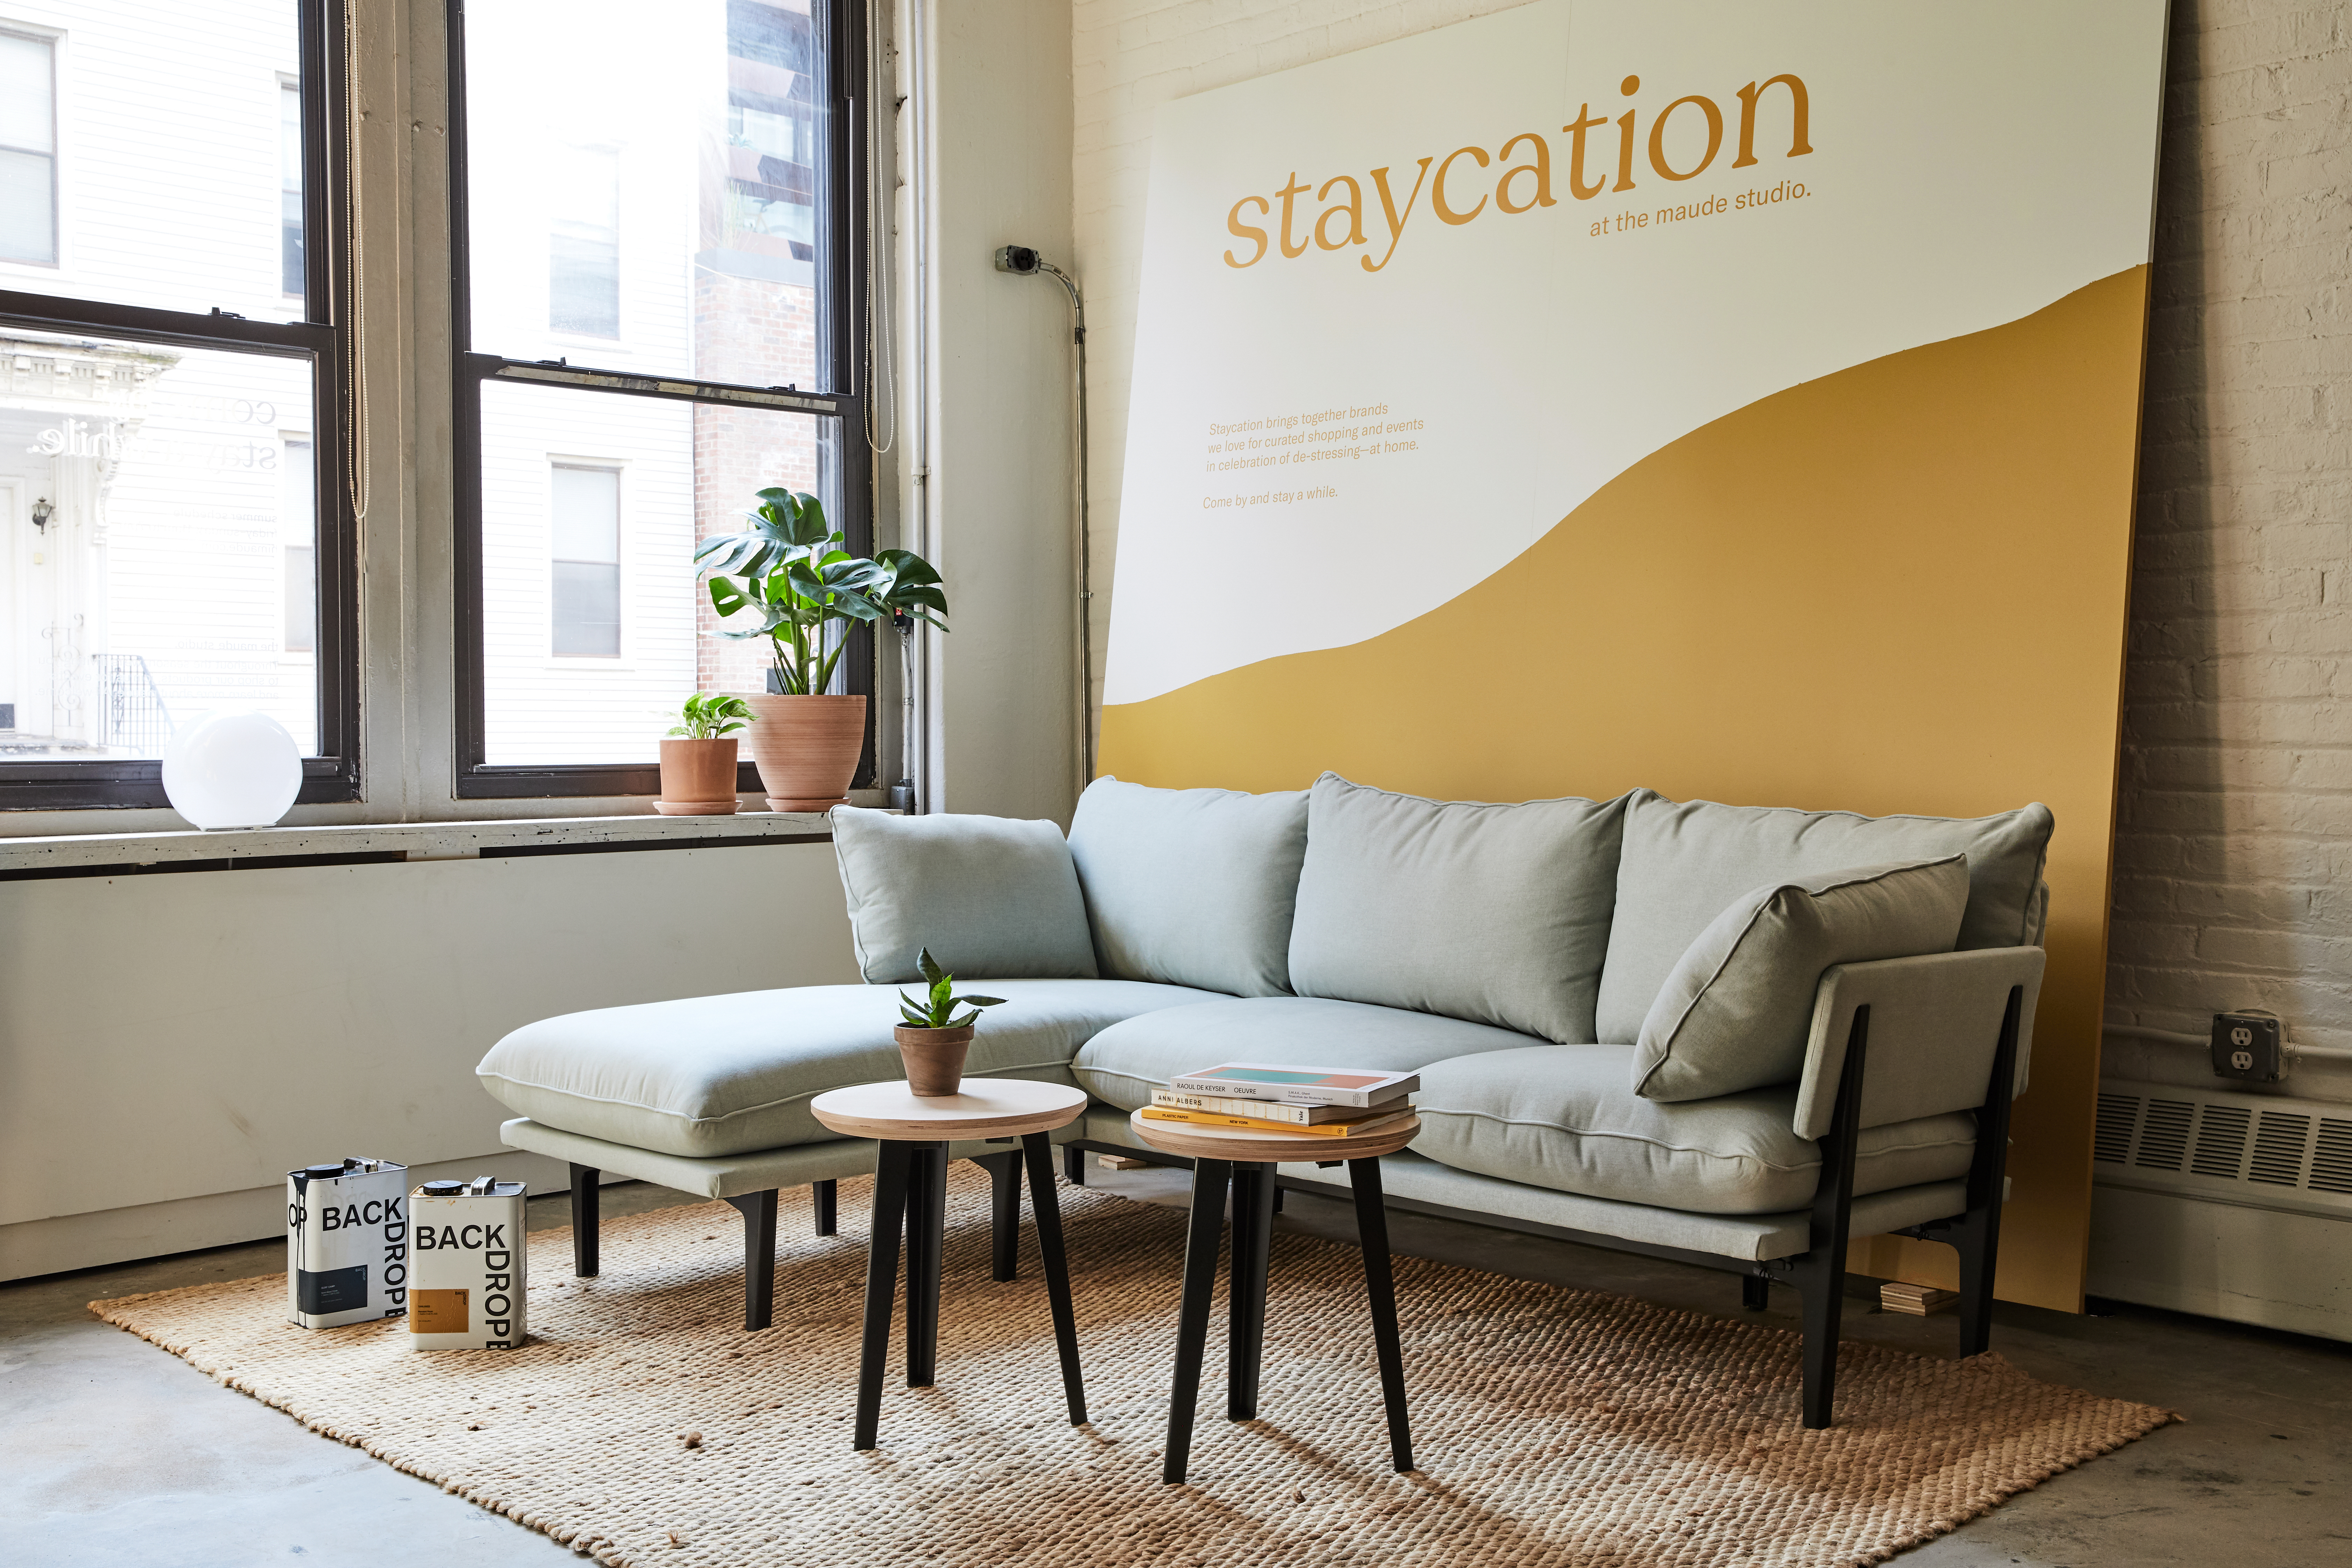 maude Staycation retail popup sign and Floyd couch